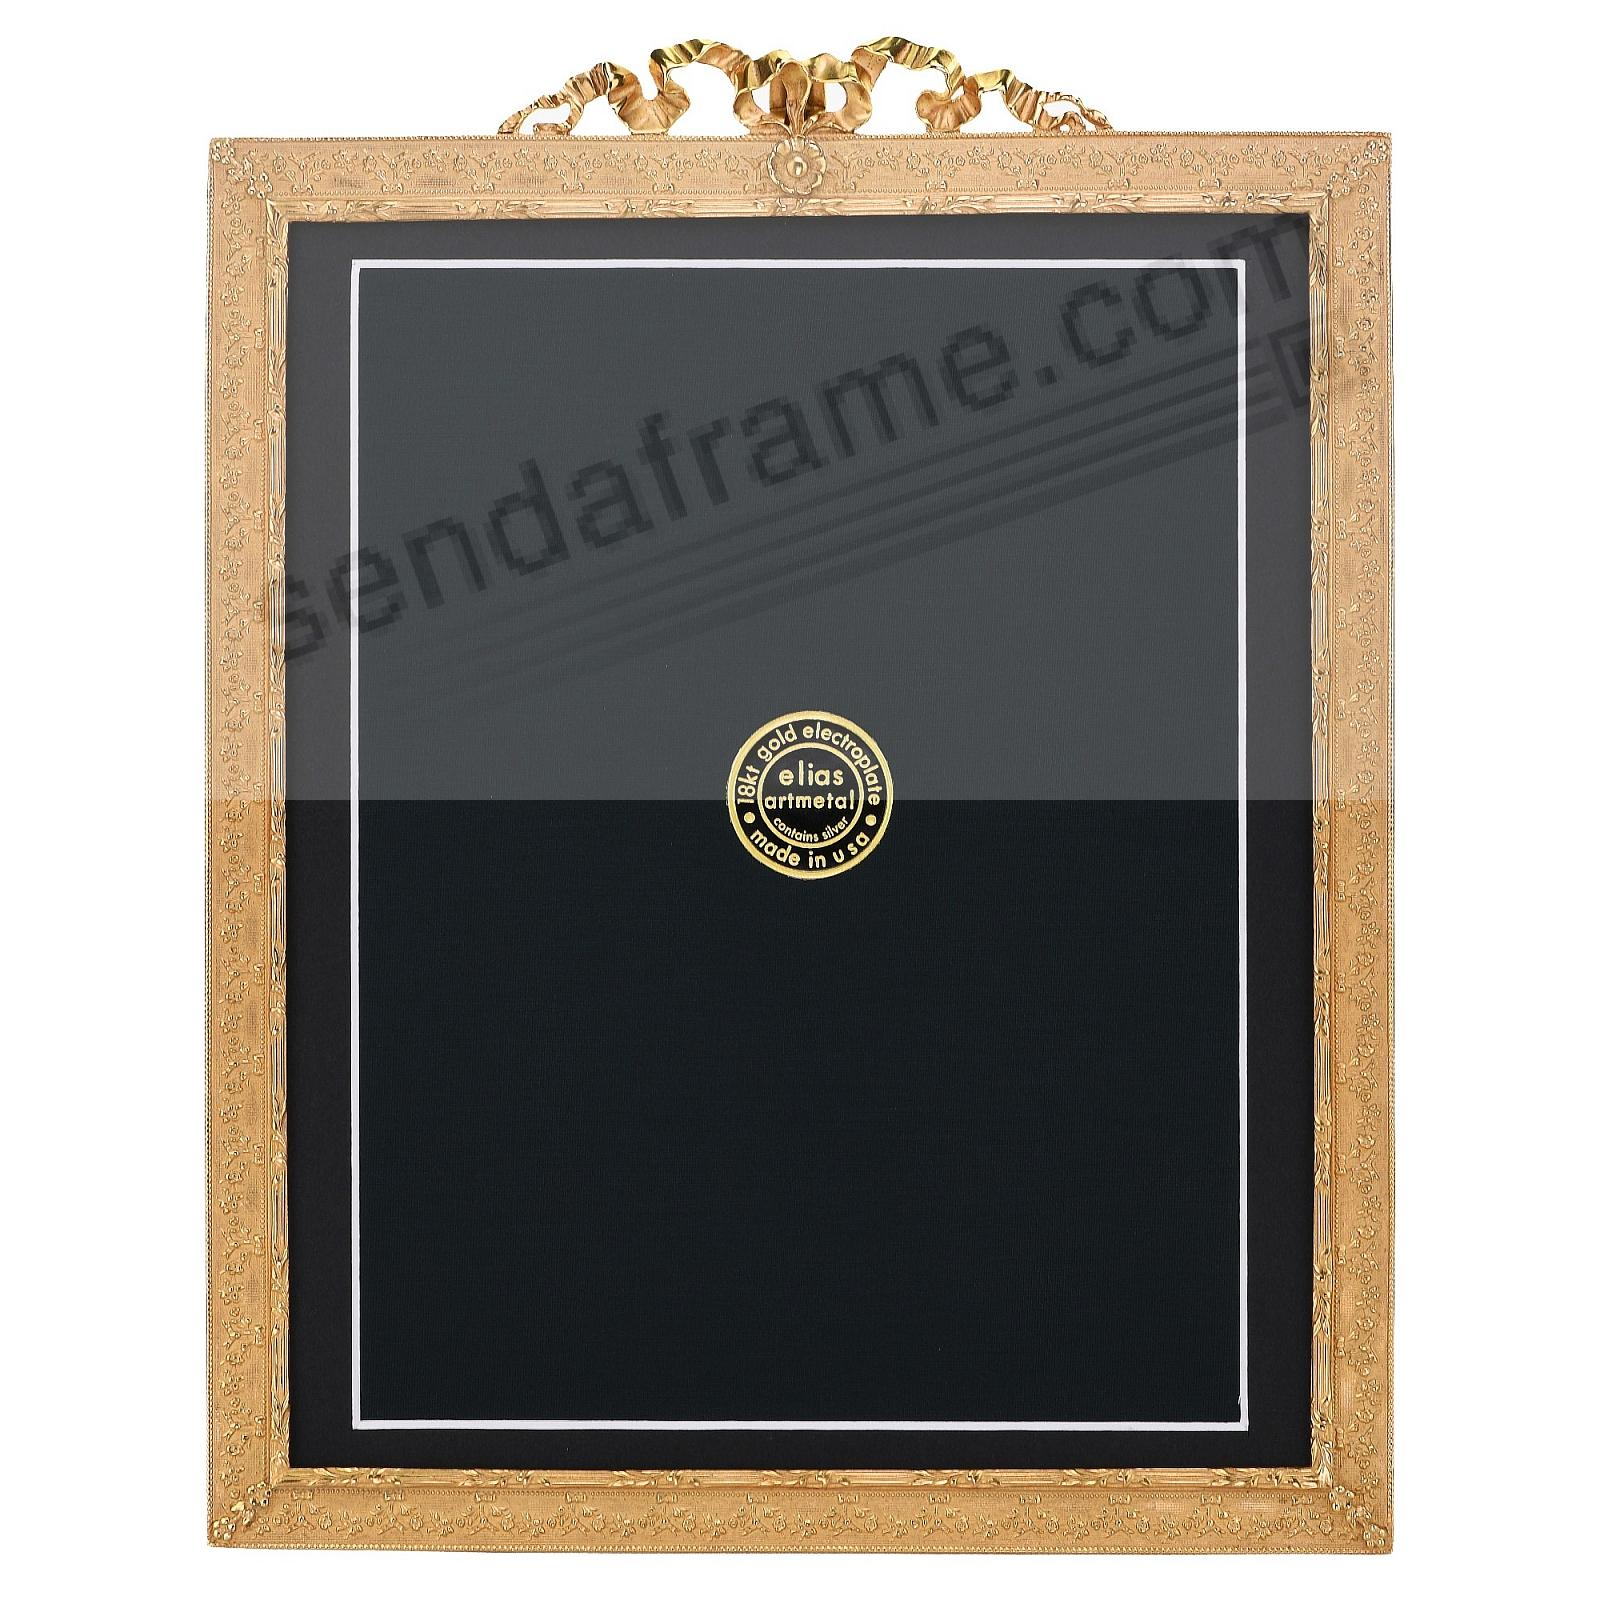 DELICATO 18kt Museum Gold Vermeil over Fine Pewter 8x10/7x9 frame by Elias Artmetal®